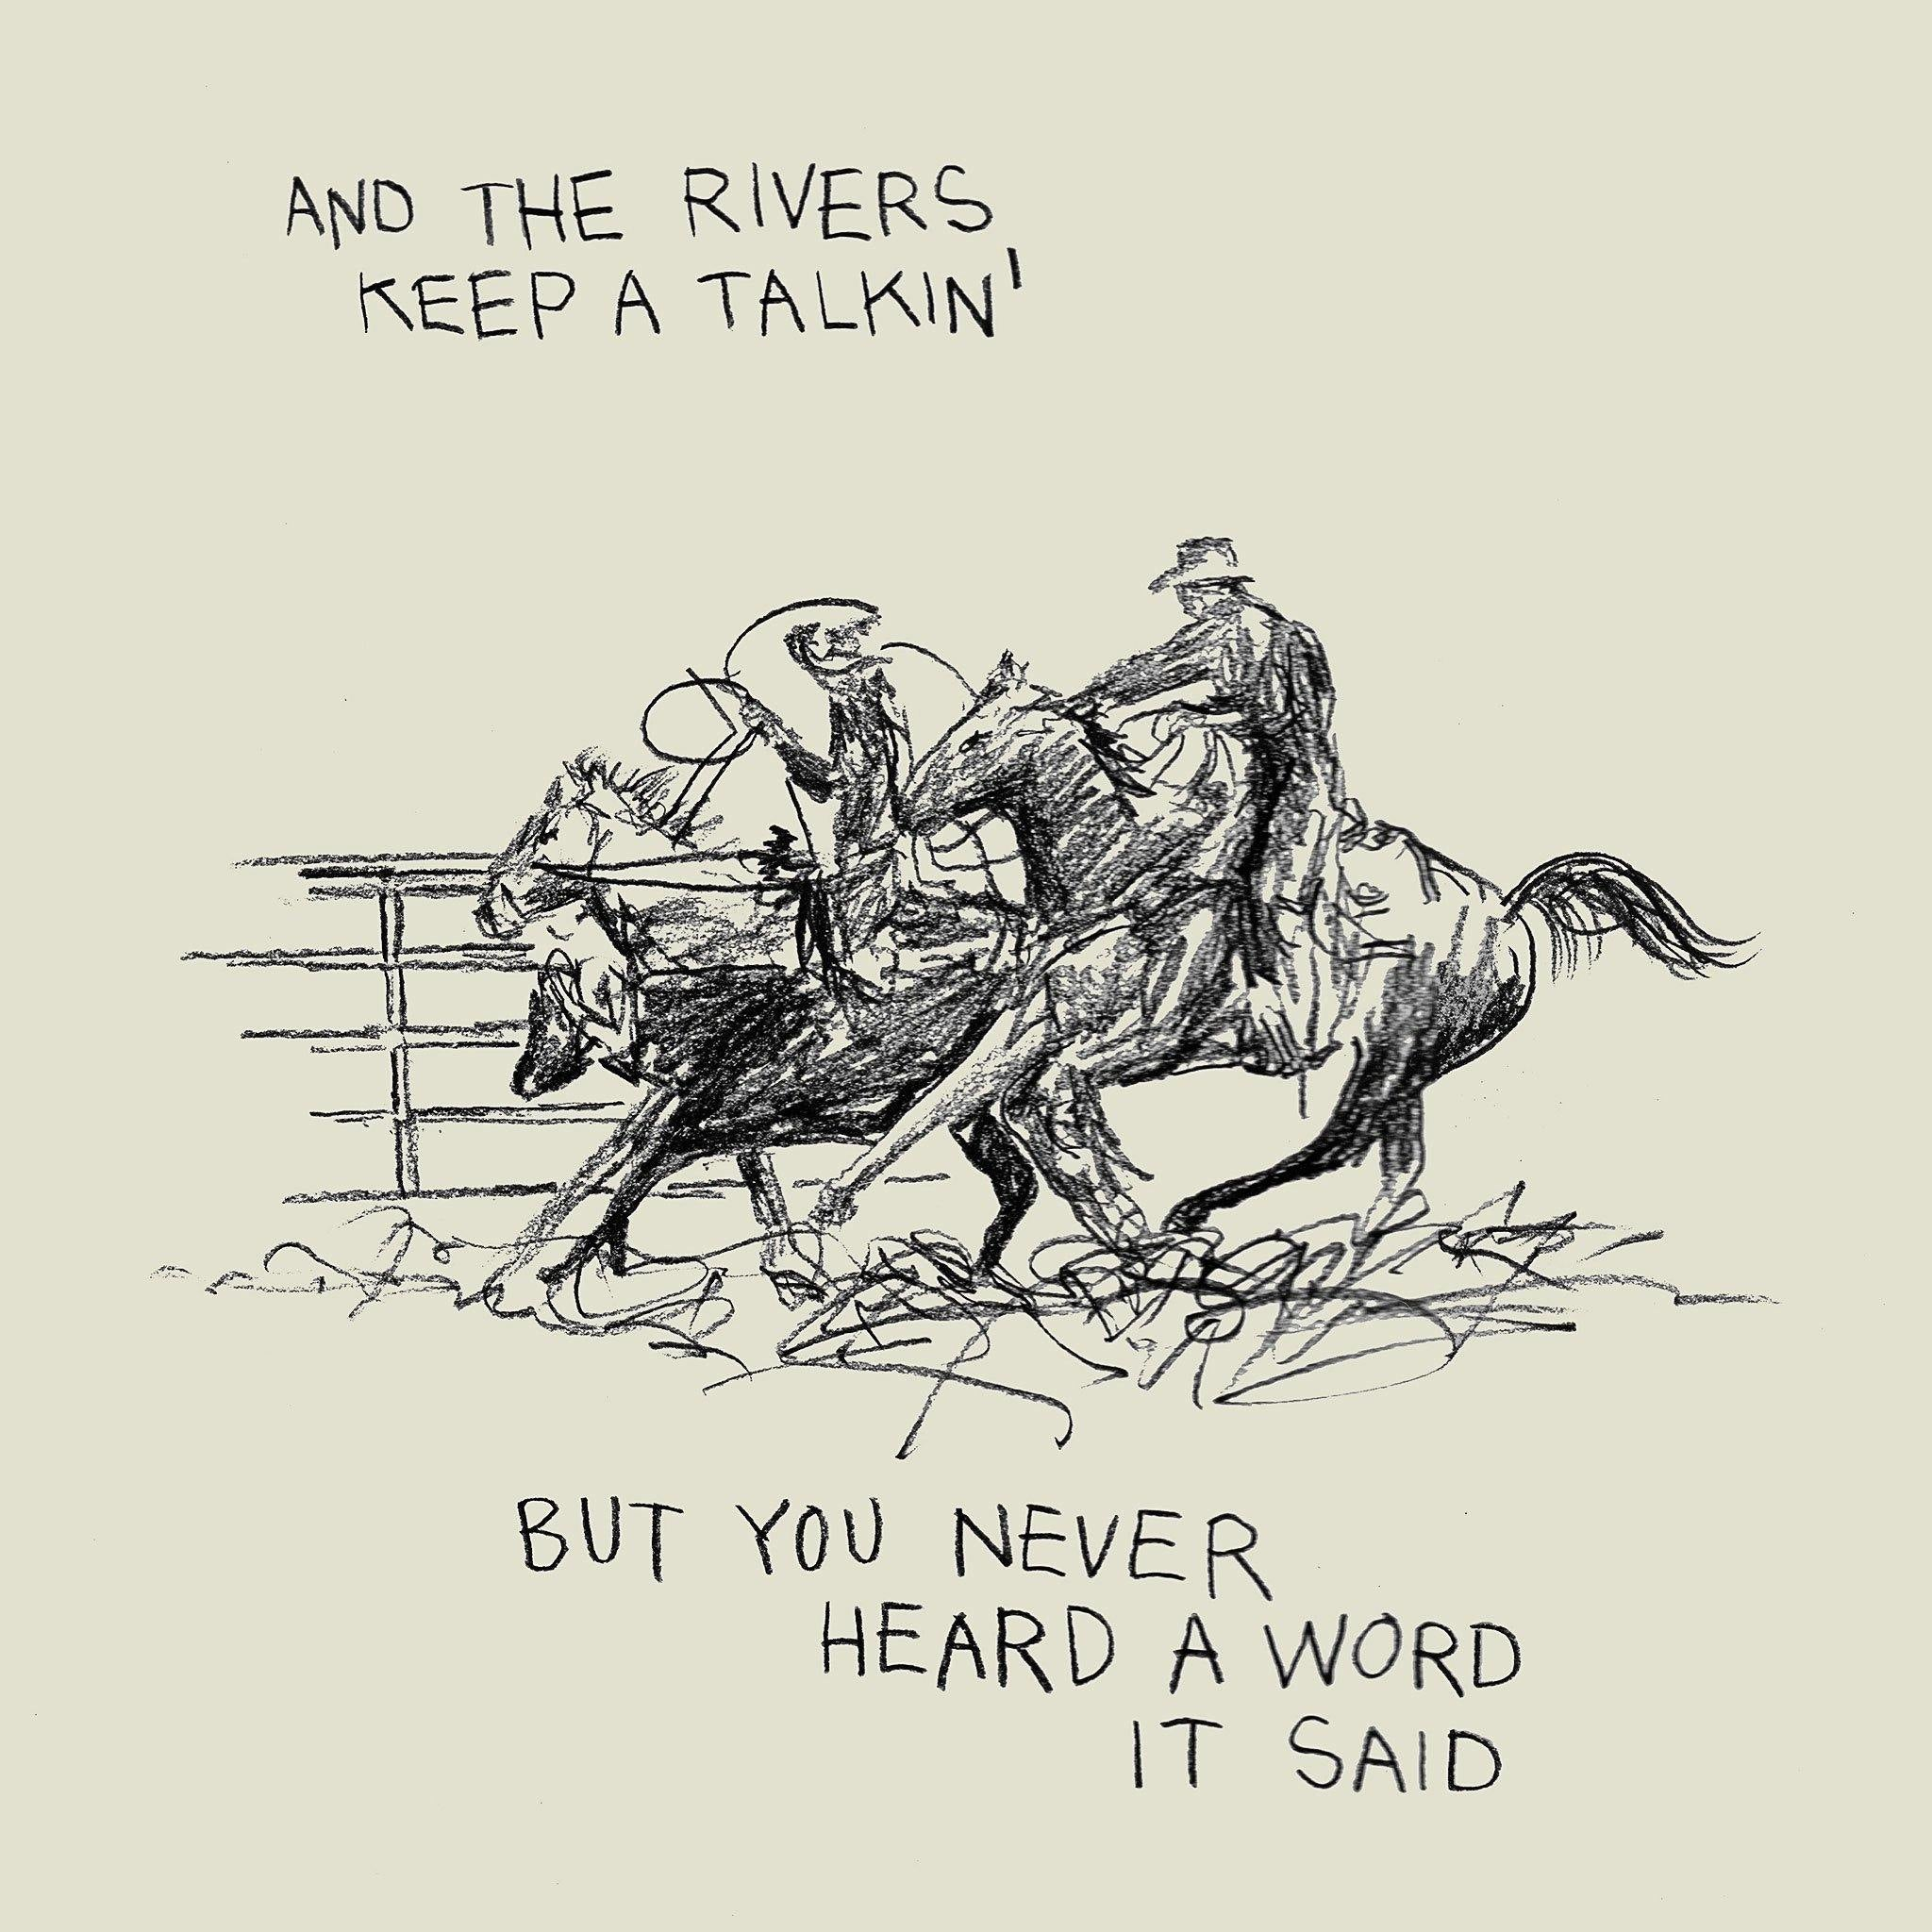 And The Rivers Keep A Talkin' But You Never Heard A Word It Said, Print  by  And The Rivers Keep A Talkin' But You Never Heard A Word It Said Tappan